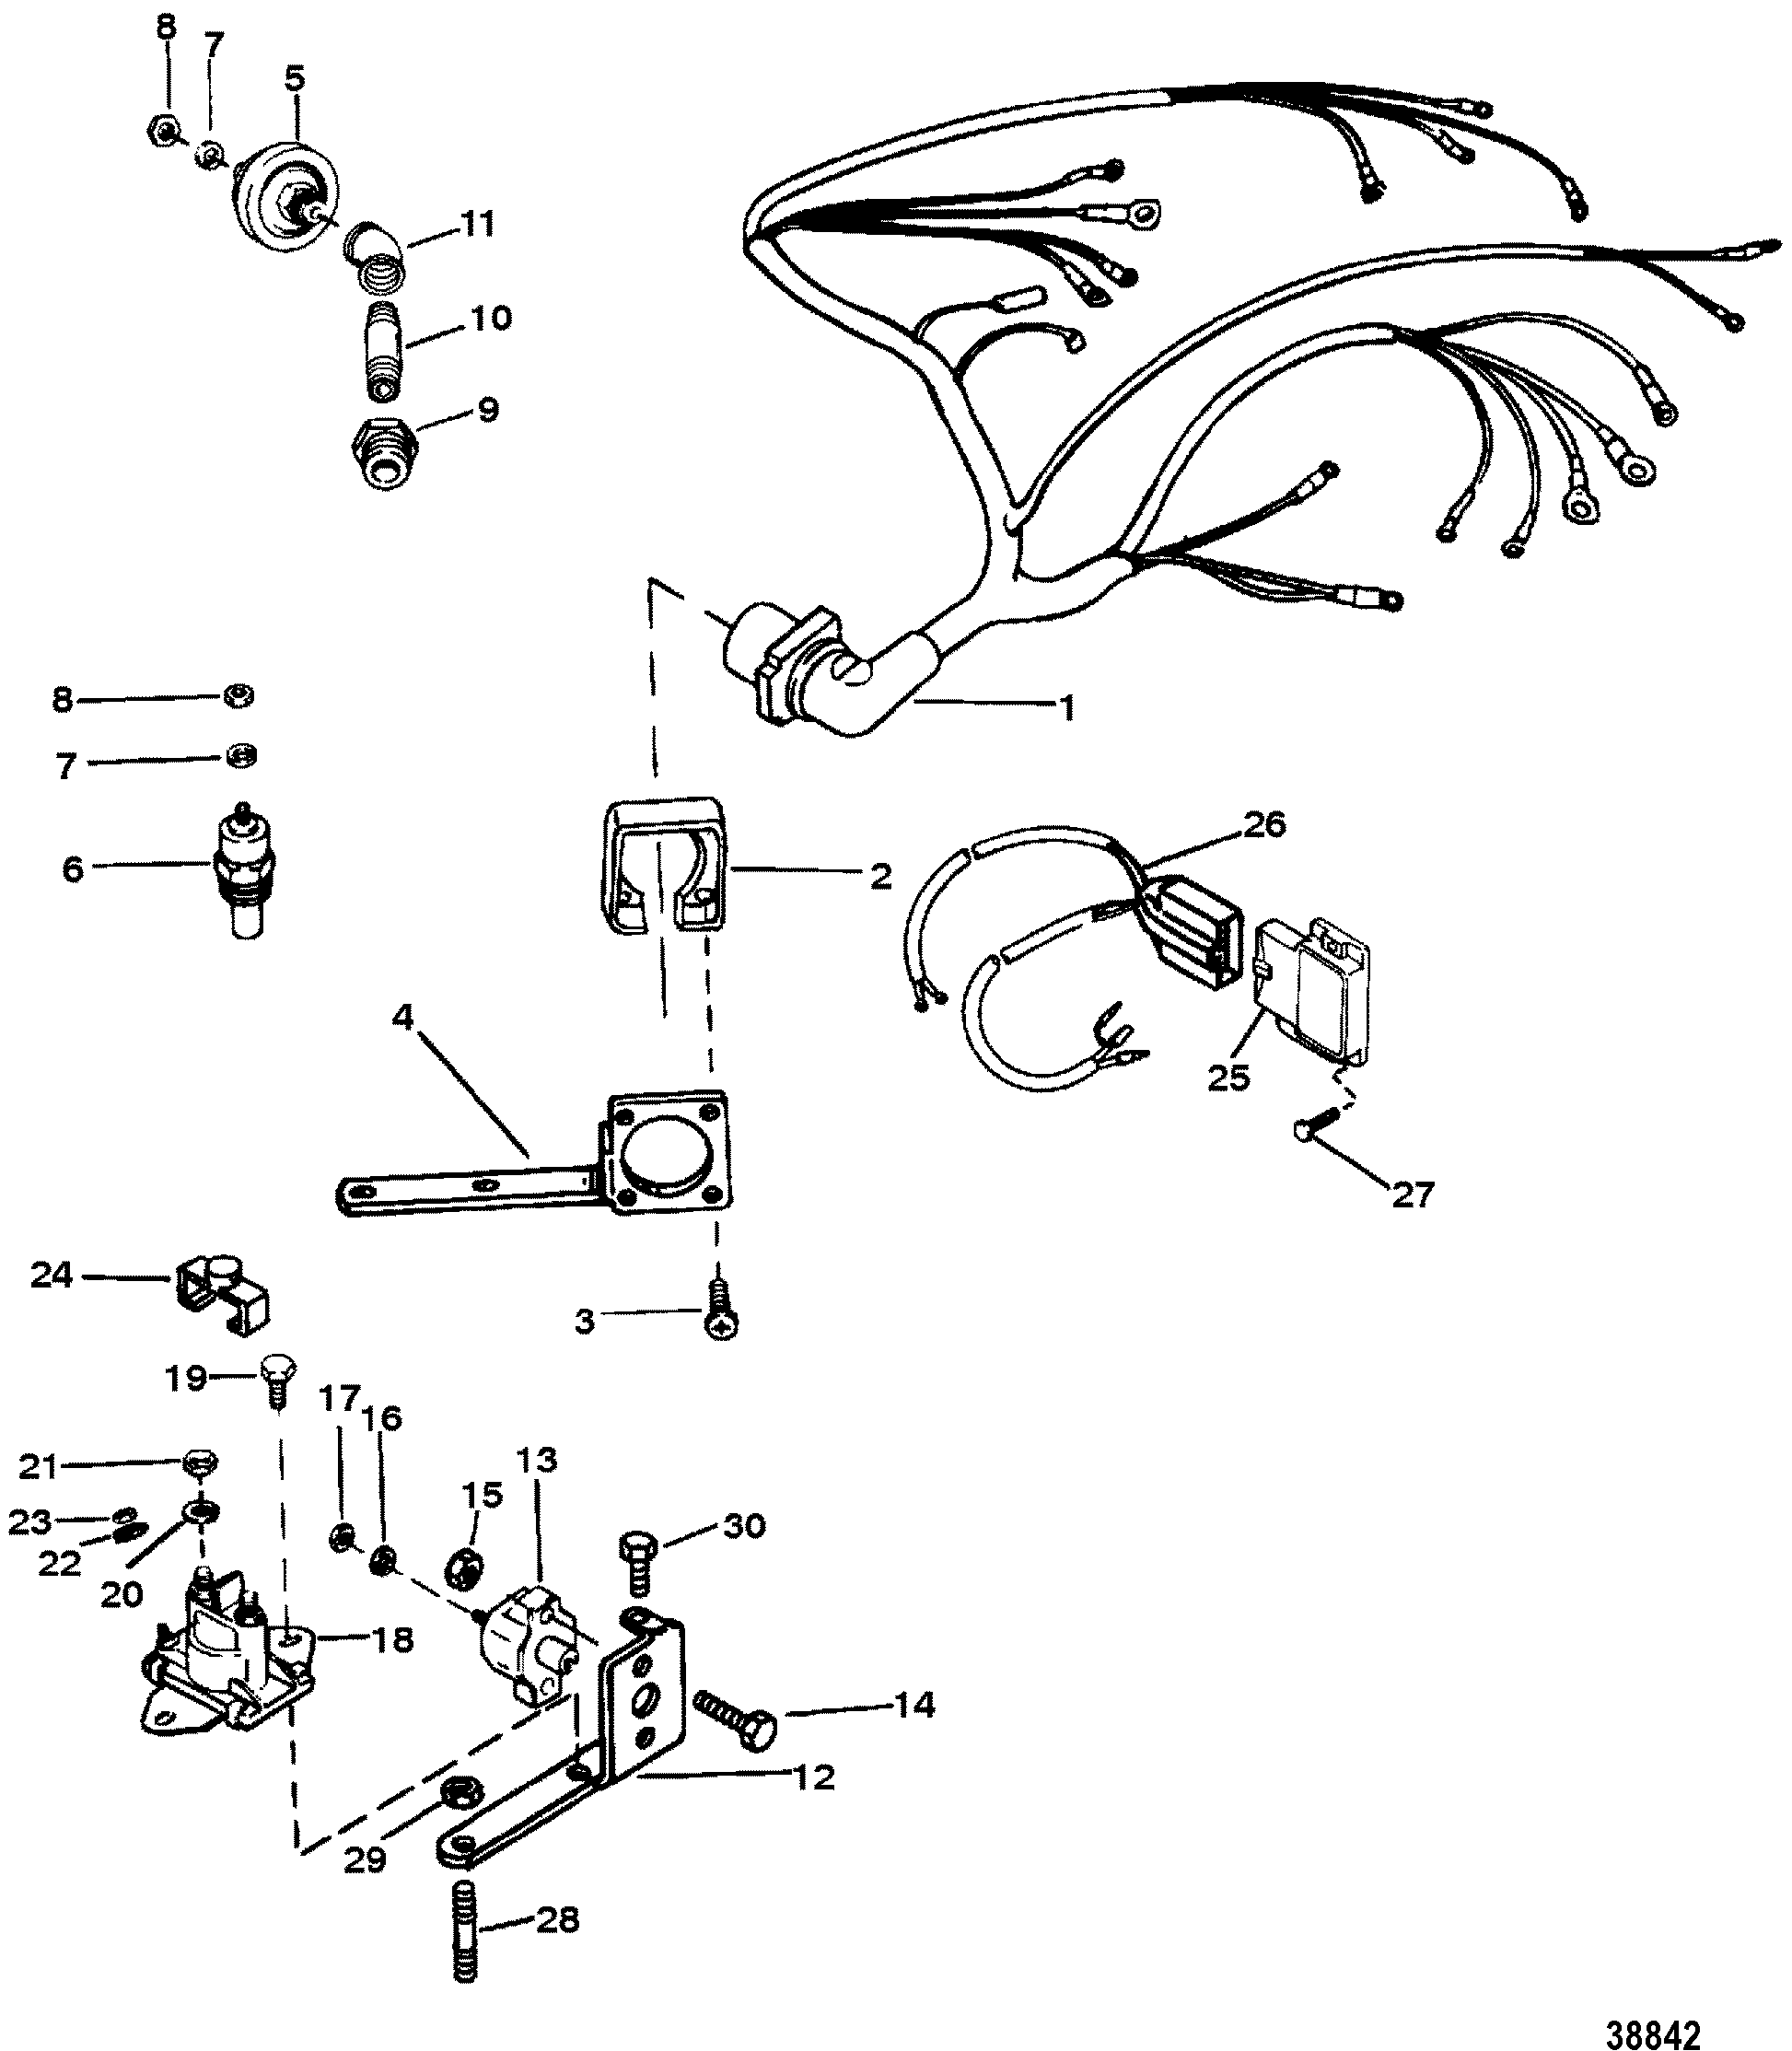 Cp Performance Wiring Harness Electrical Mounted On Distributor 1996 Gmc Diagram Section Drawing Hover Or Click To View Larger